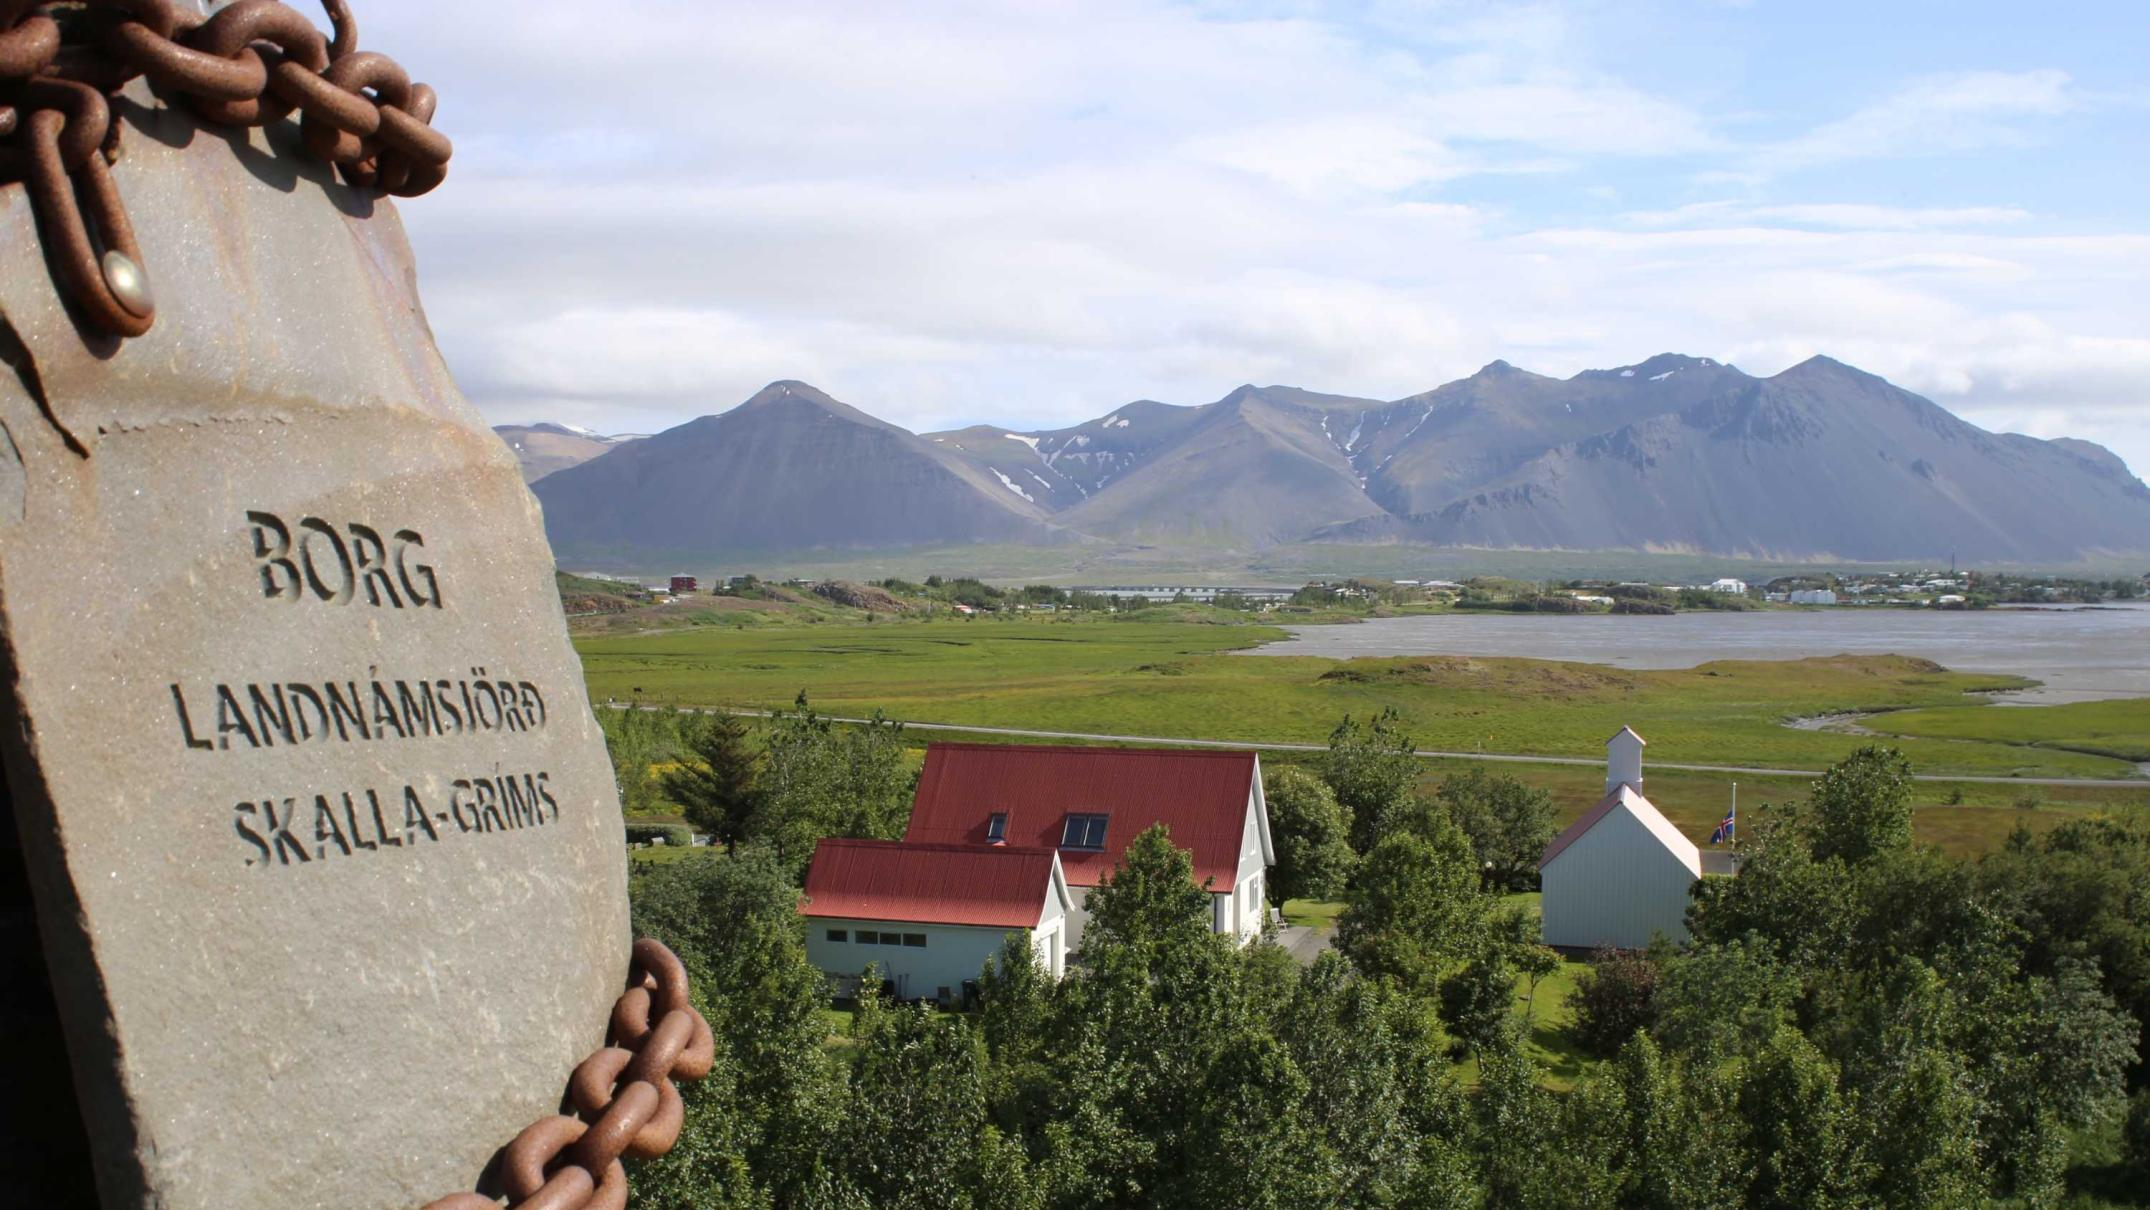 Richard and Kári travelled to Borg in mid-western Iceland – home base of Egil the Viking in the sagas (Photo: Richard Fidler)